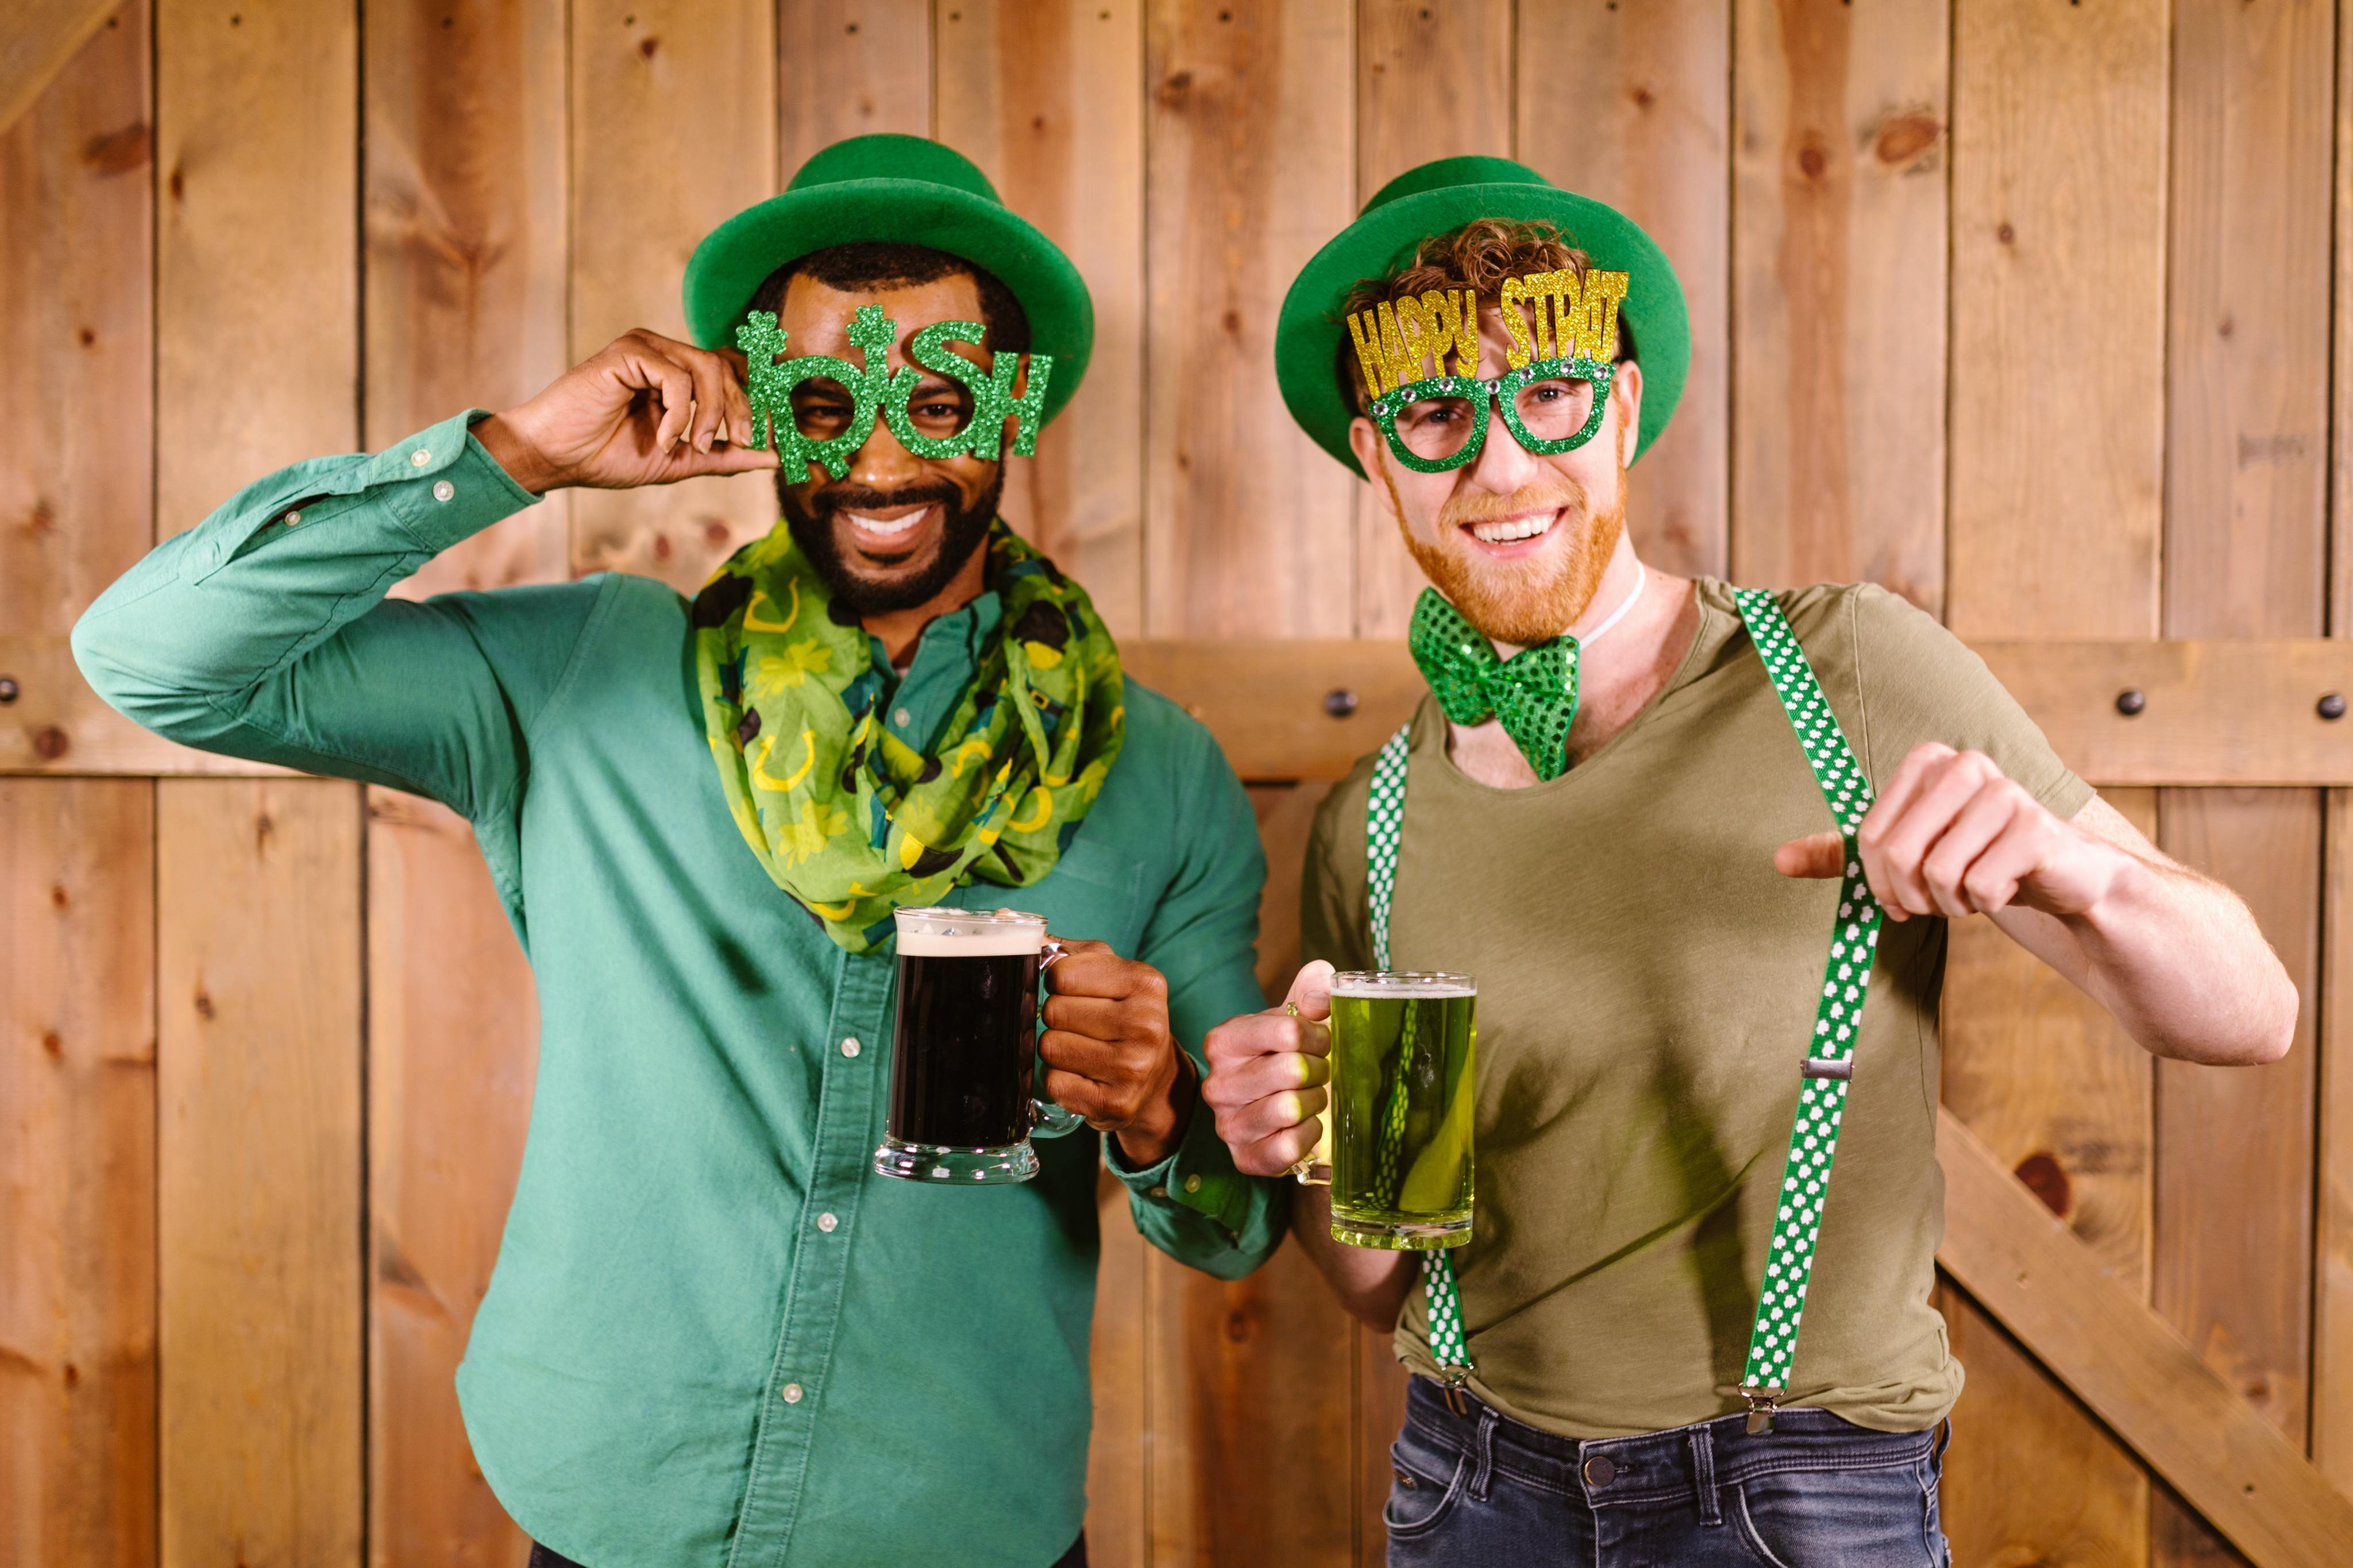 St. Patty's Day Fun: Where to Find Green Beer and Cocktails in Vancouver, WA | Acero Haagen Park-image